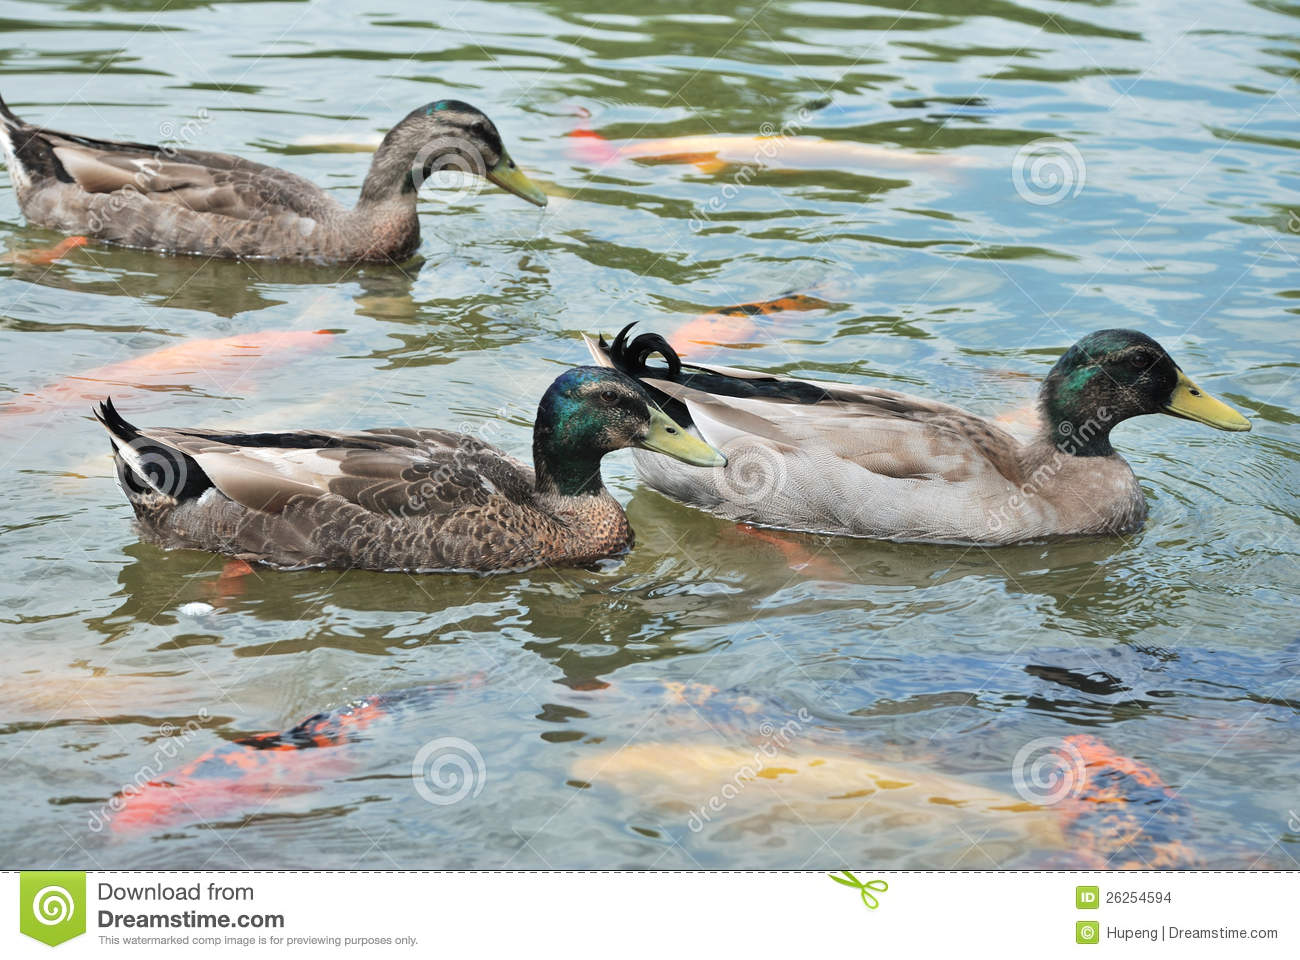 Ducks and fish stock images image 26254594 for Fishing for ducks